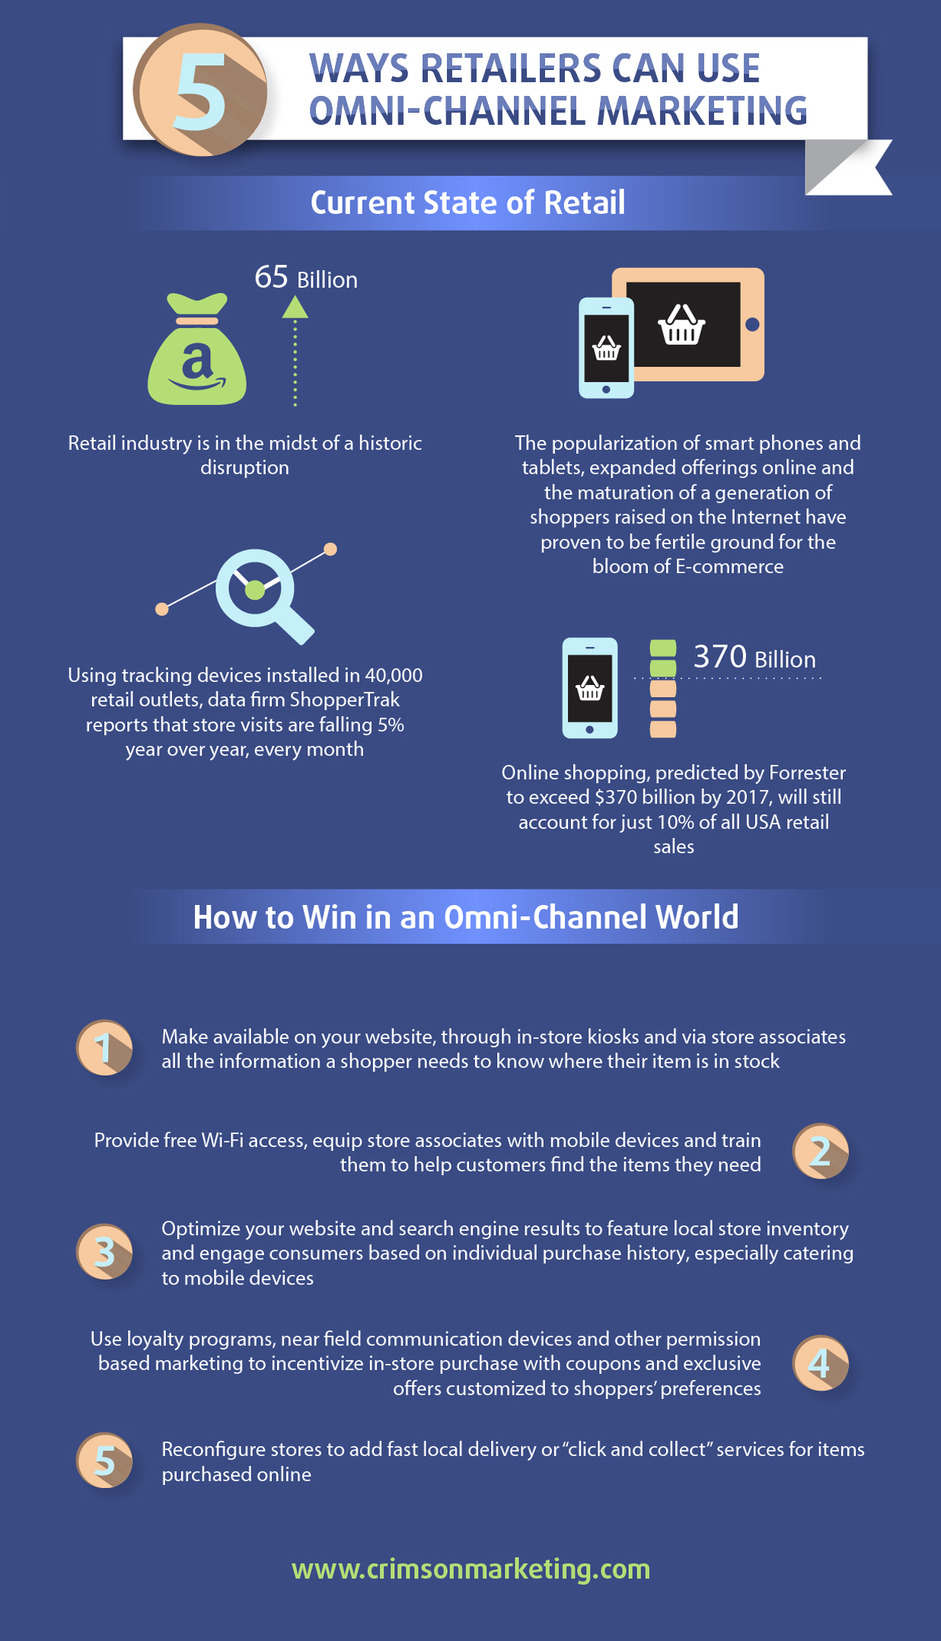 How To Compete and Succeed In An Omni-Channel World